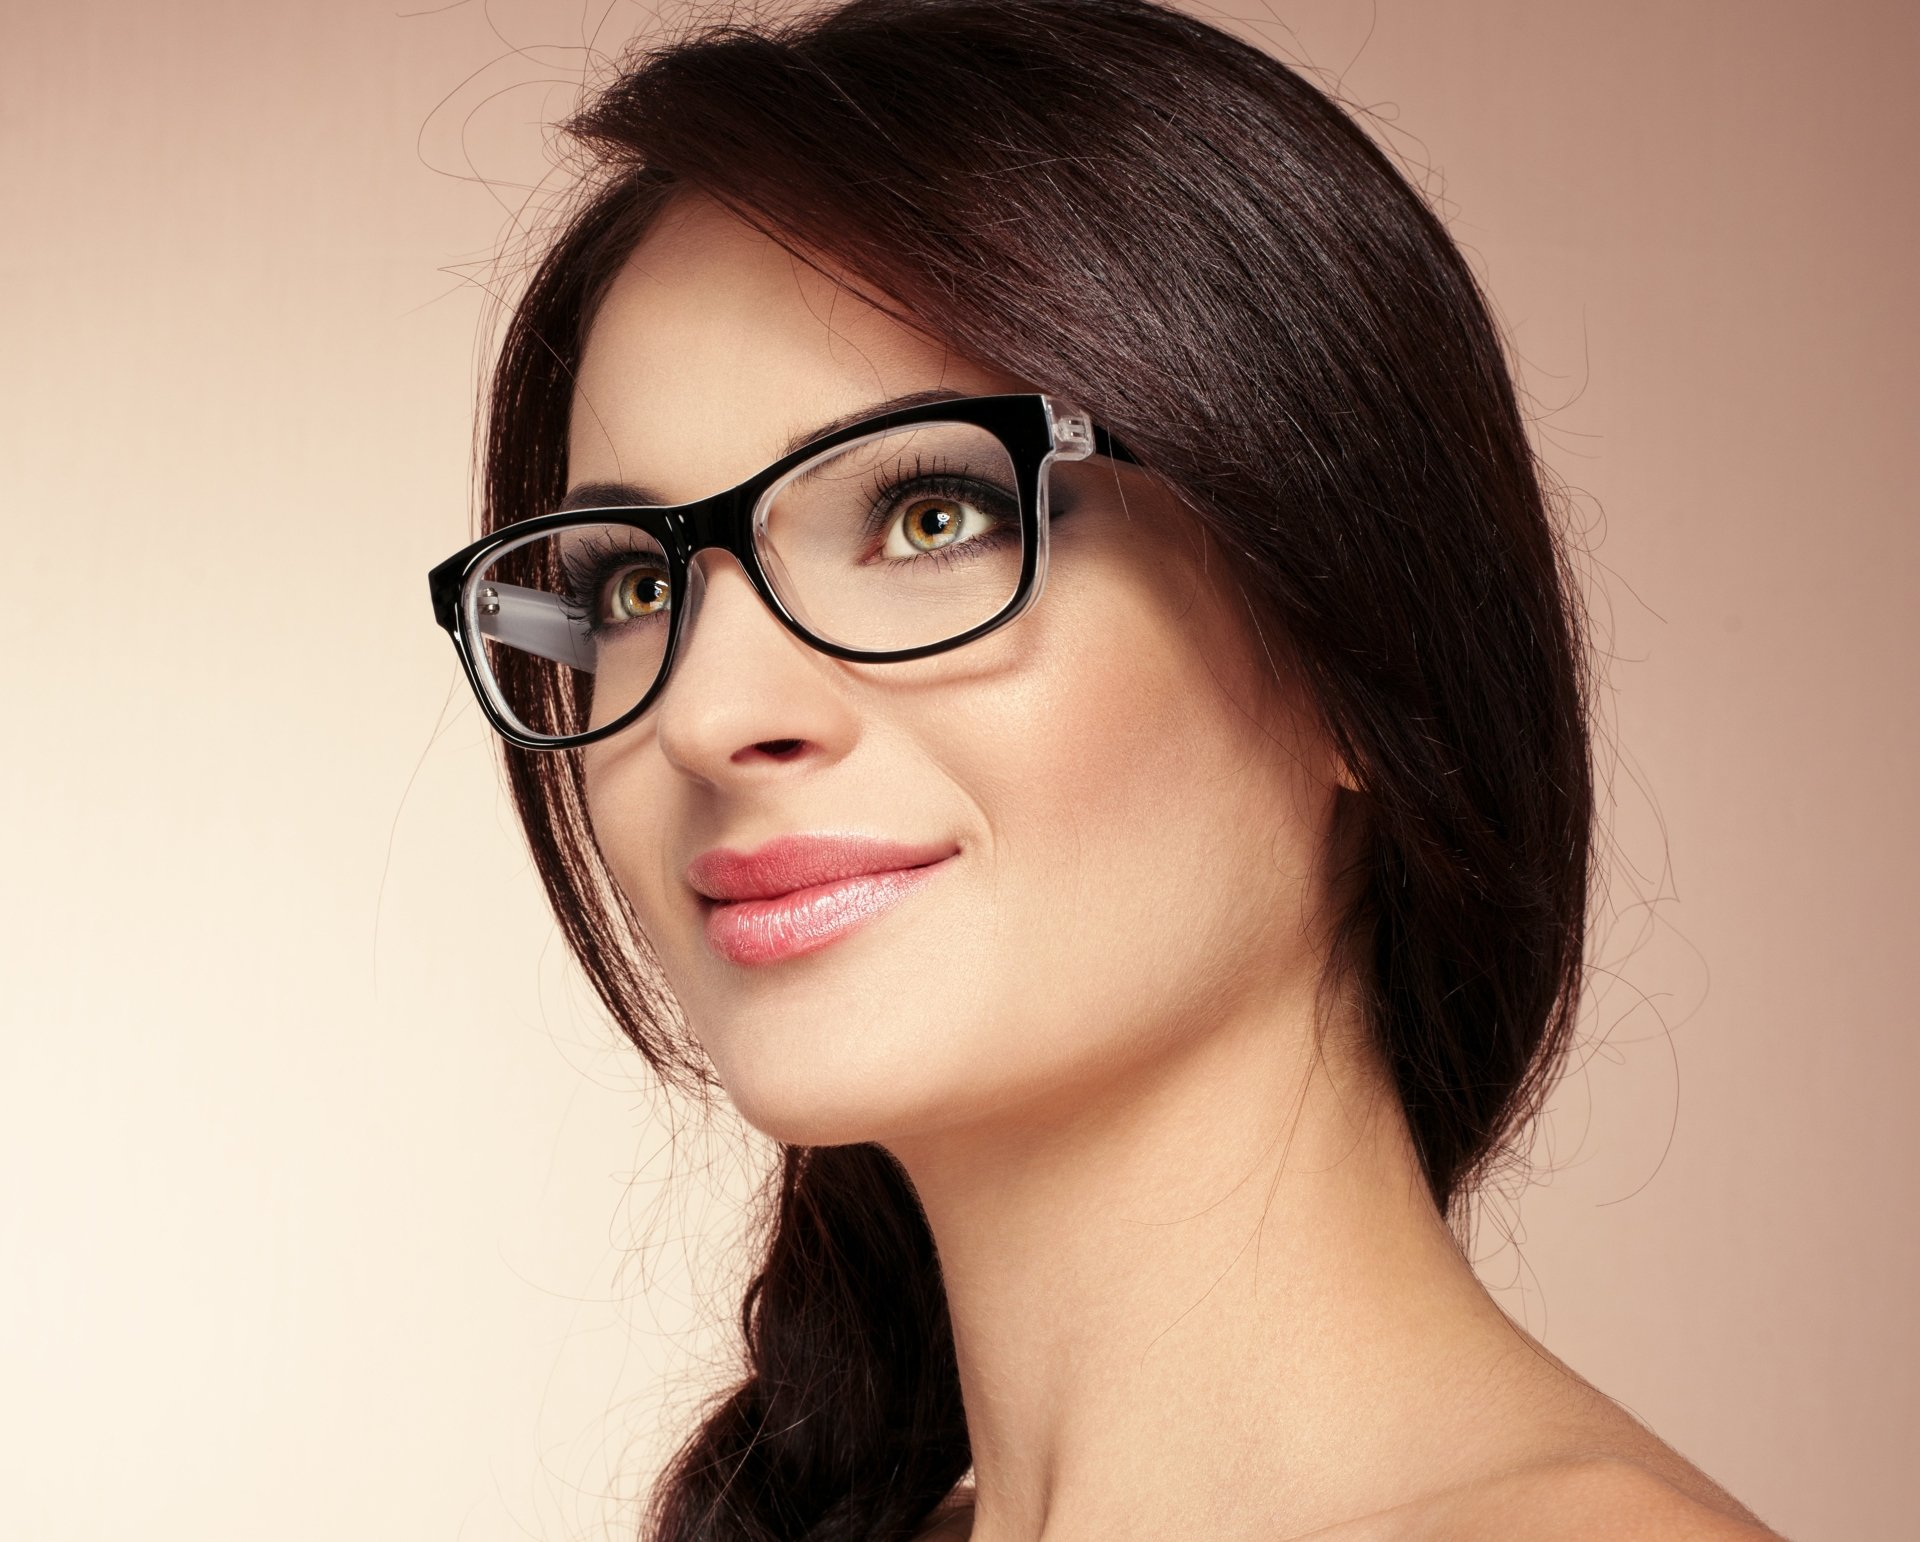 Women - Face  Model Smile Glasses Girl Woman Wallpaper